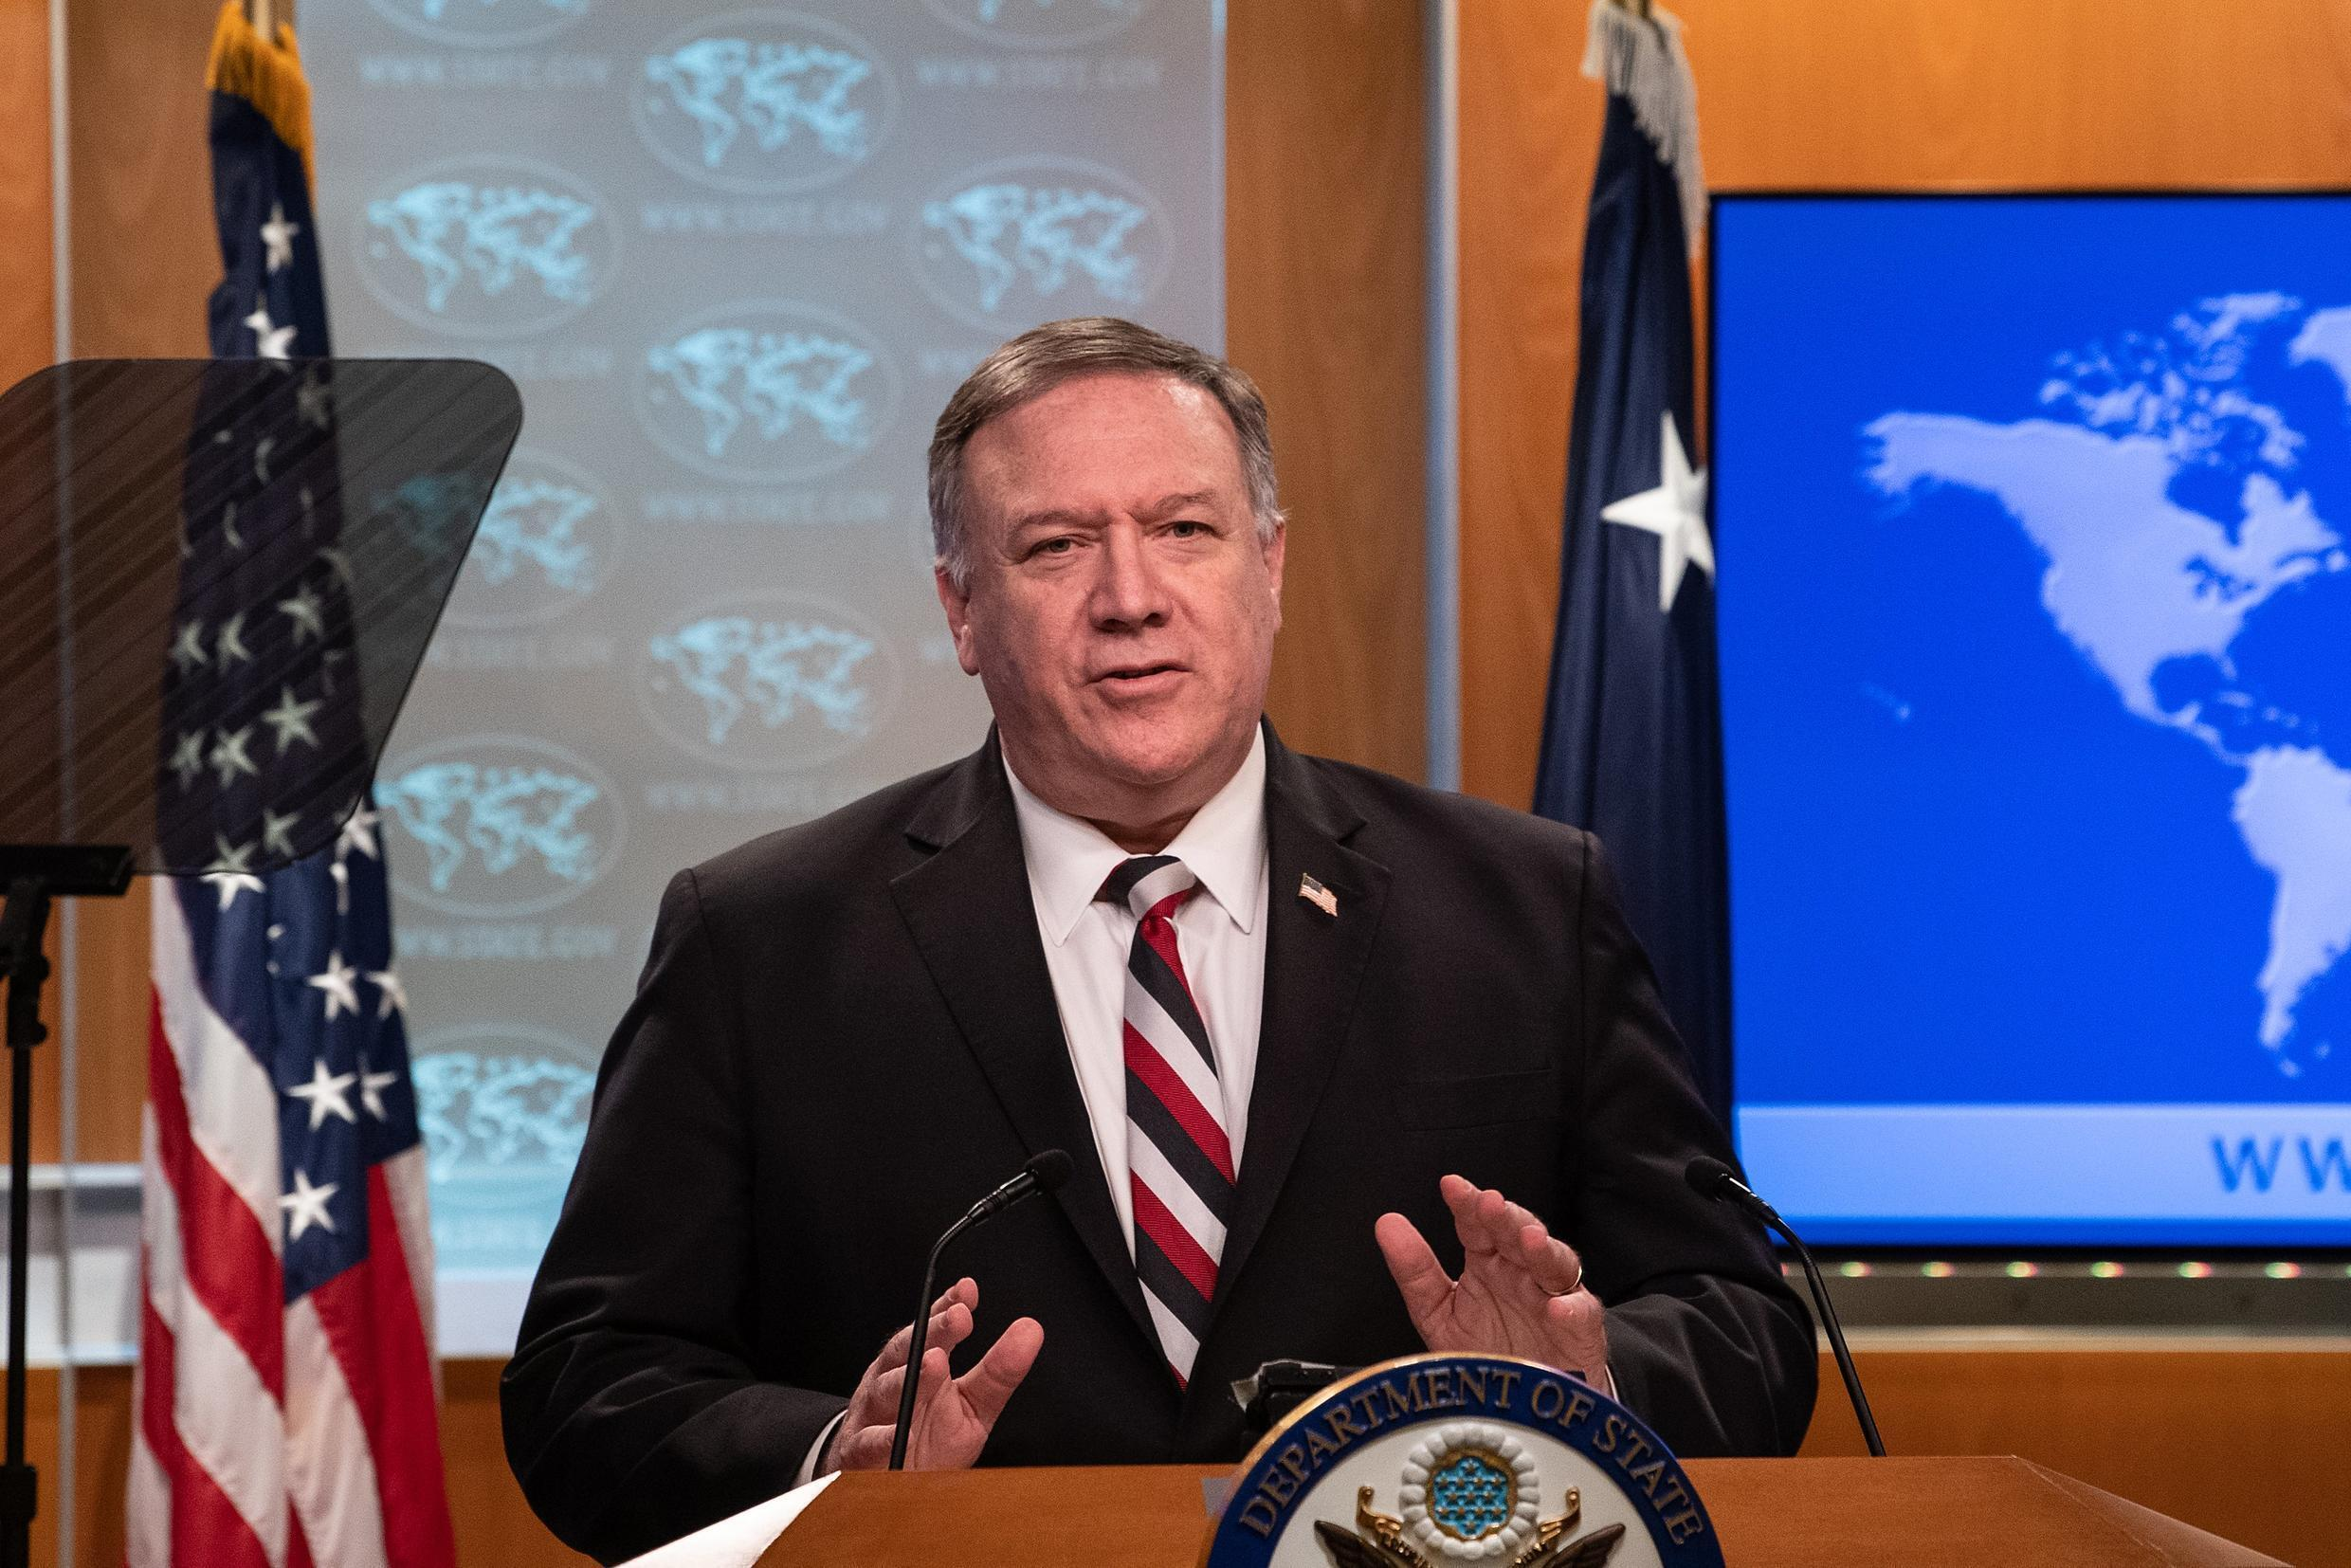 US Secretary of State Mike Pompeo, seen here in March 2020, is encouraging Saudi Arabia to recognize Israel